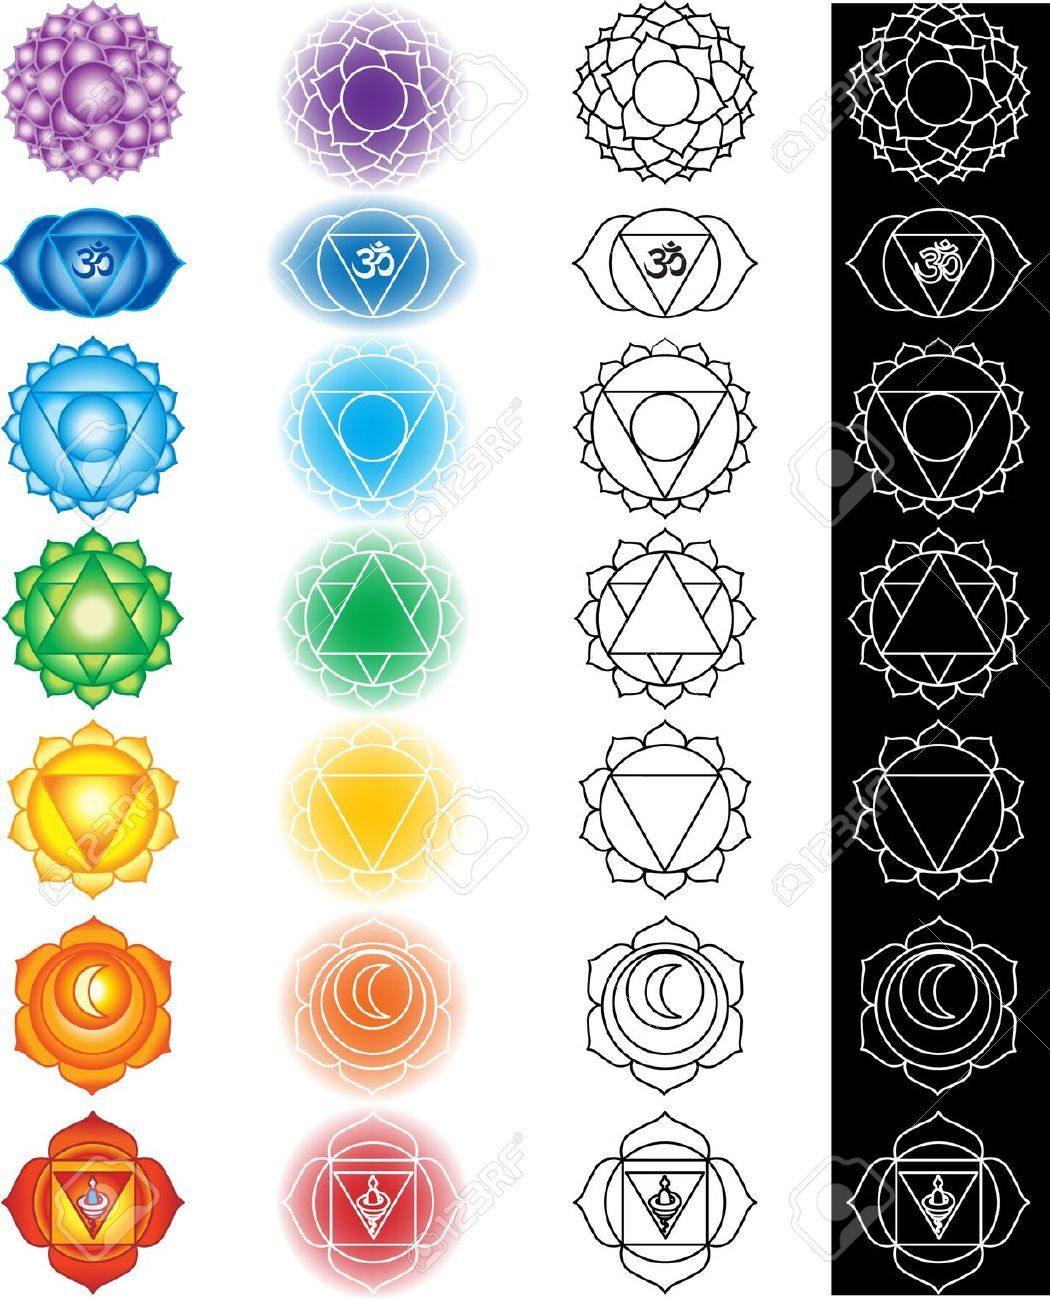 Chakras for beginners easiest explanation ever for the seven symbols biocorpaavc Images